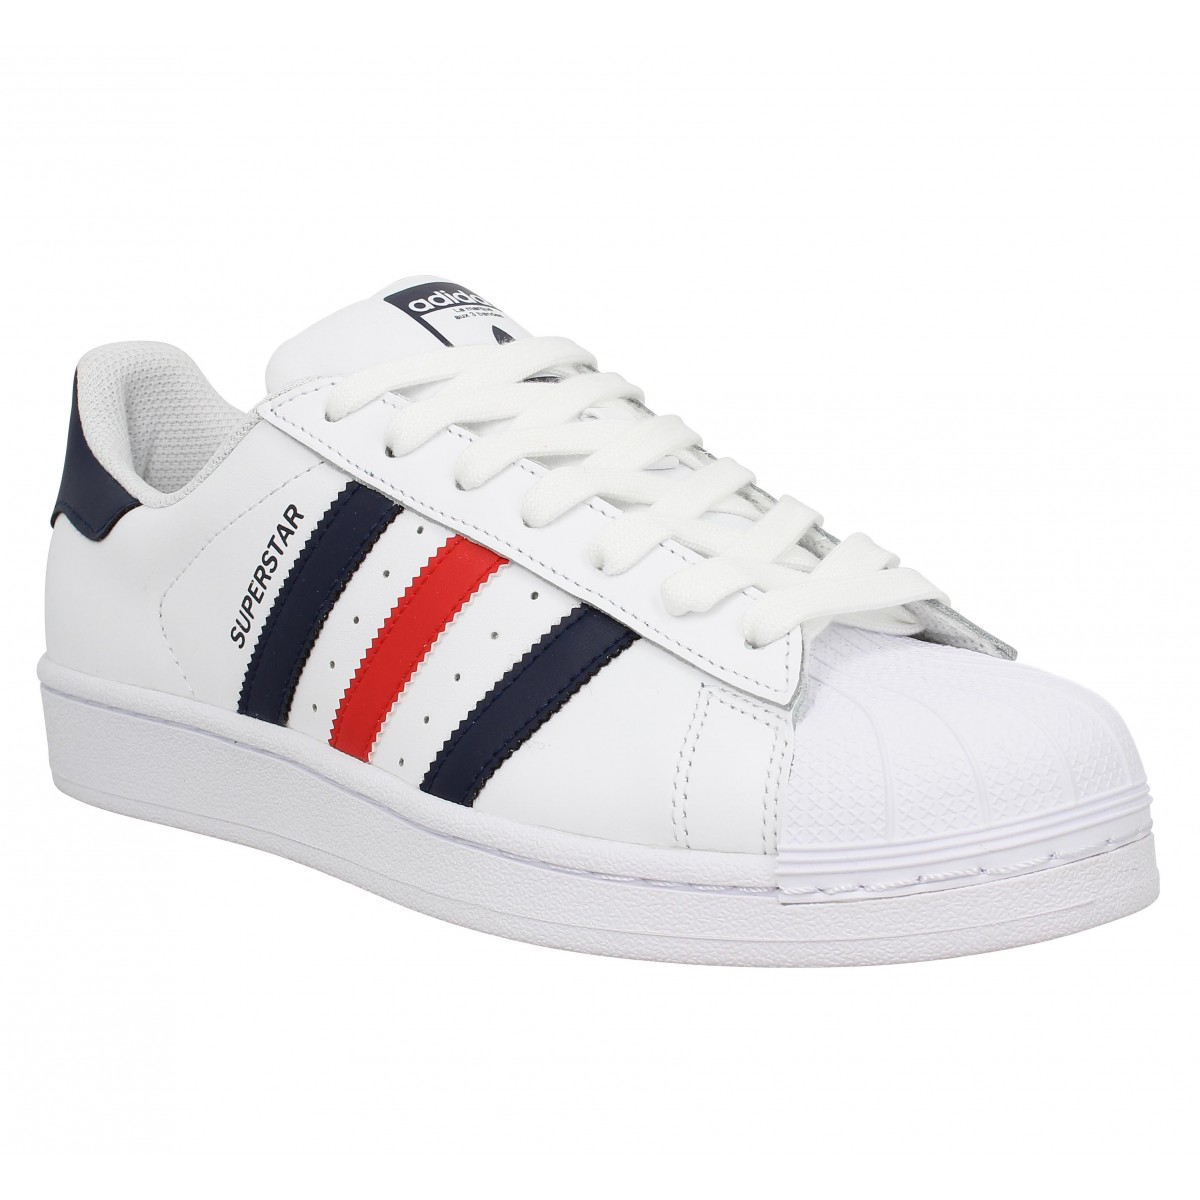 save up to 80% where to buy attractive price adidas superstar foundation rouge